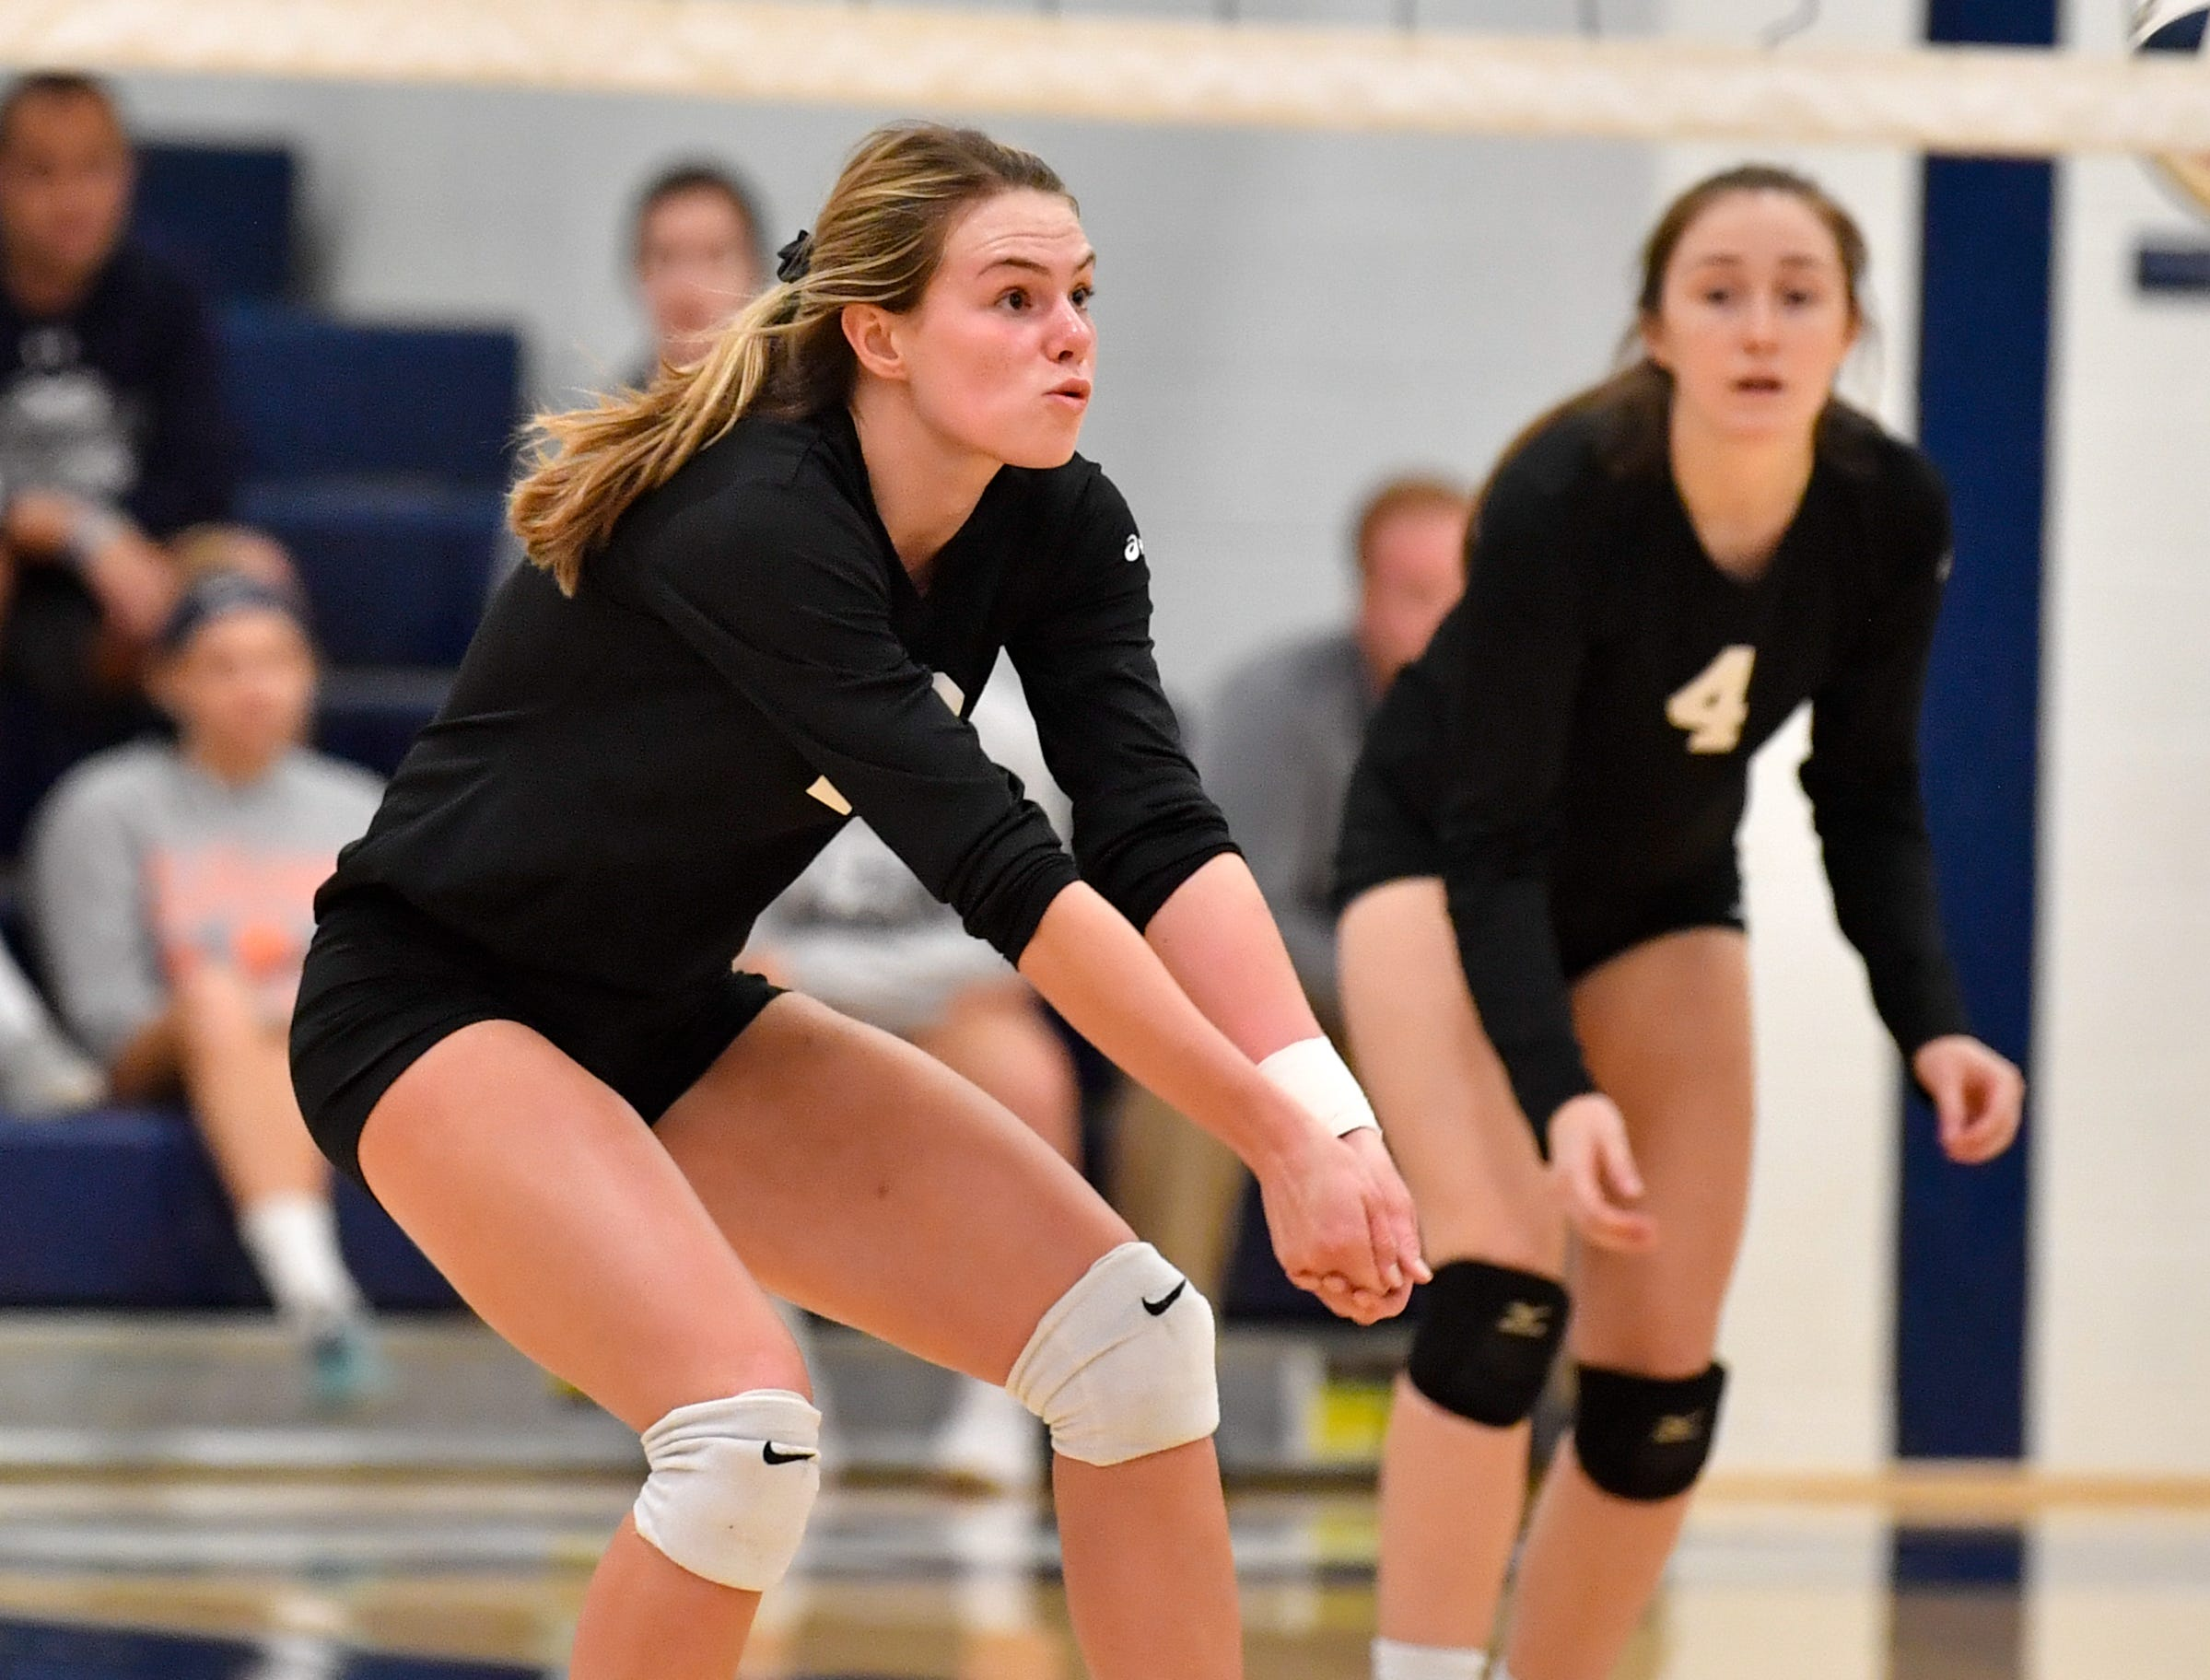 Elizabeth Mooney (13) bumps the ball during the District 3 Class 3A girls' volleyball quarterfinals between Dover and York Suburban at West York High School, October 30, 2018. The Eagles defeated the Trojans 3-2.